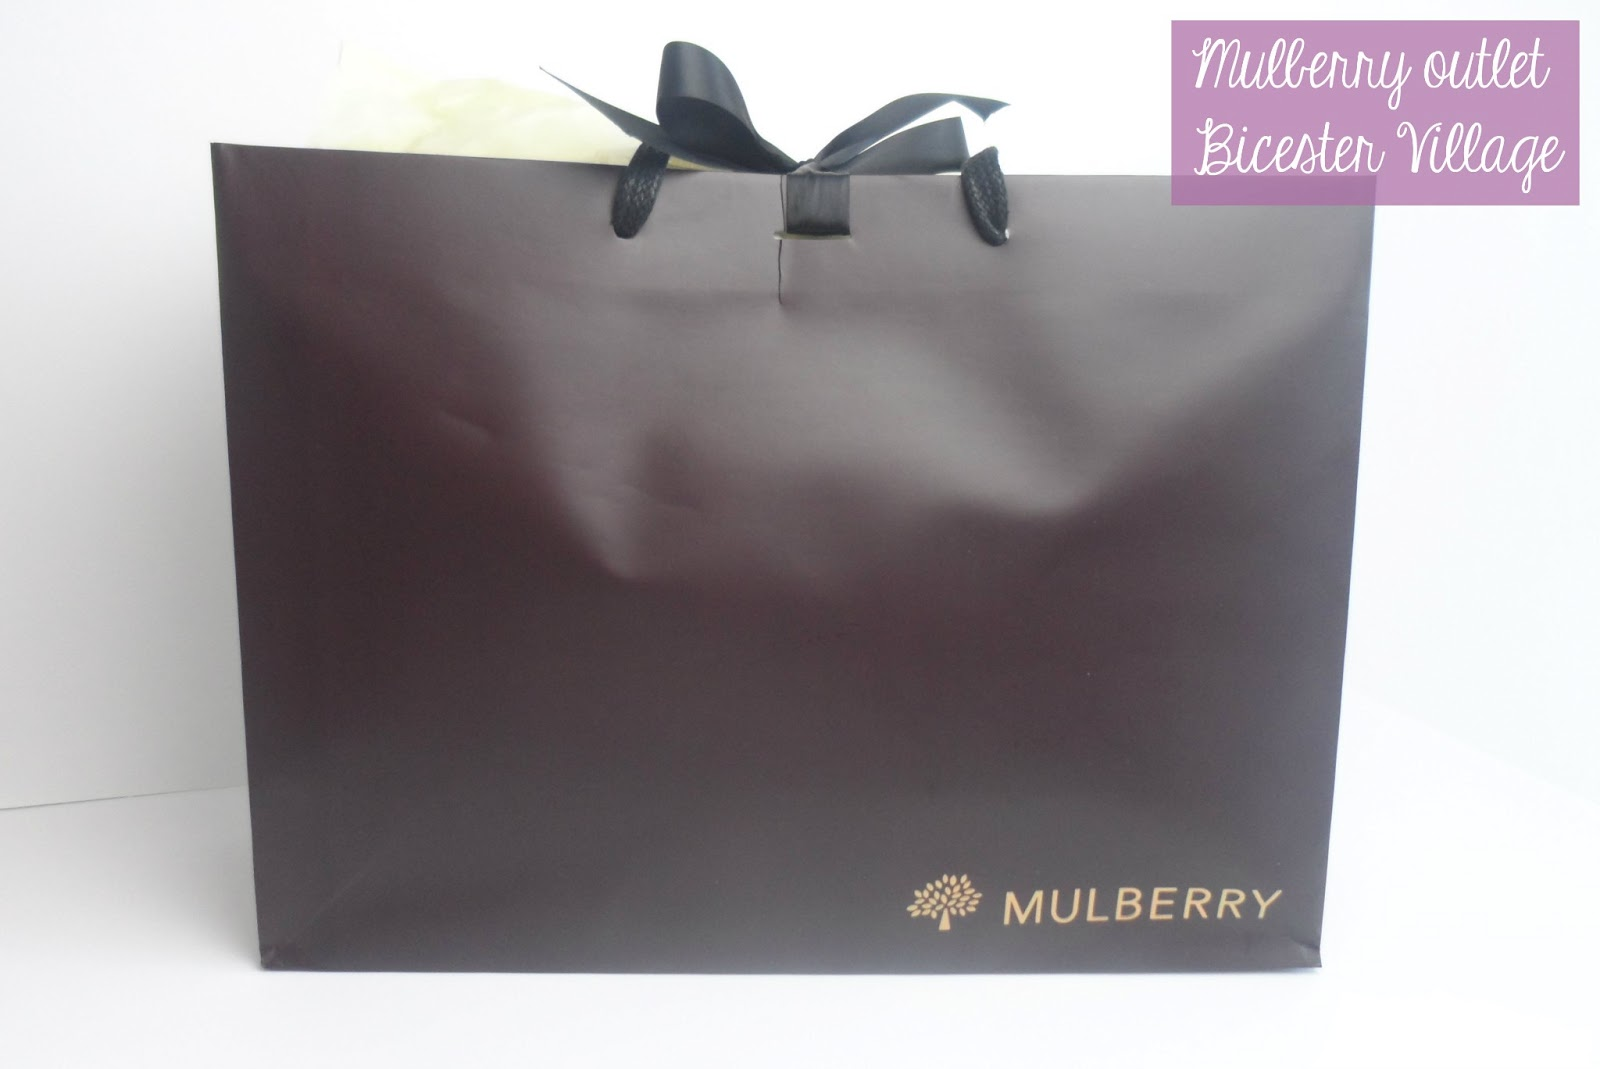 A Review Of The Mulberry Outlet At Bicester Village And My Daria